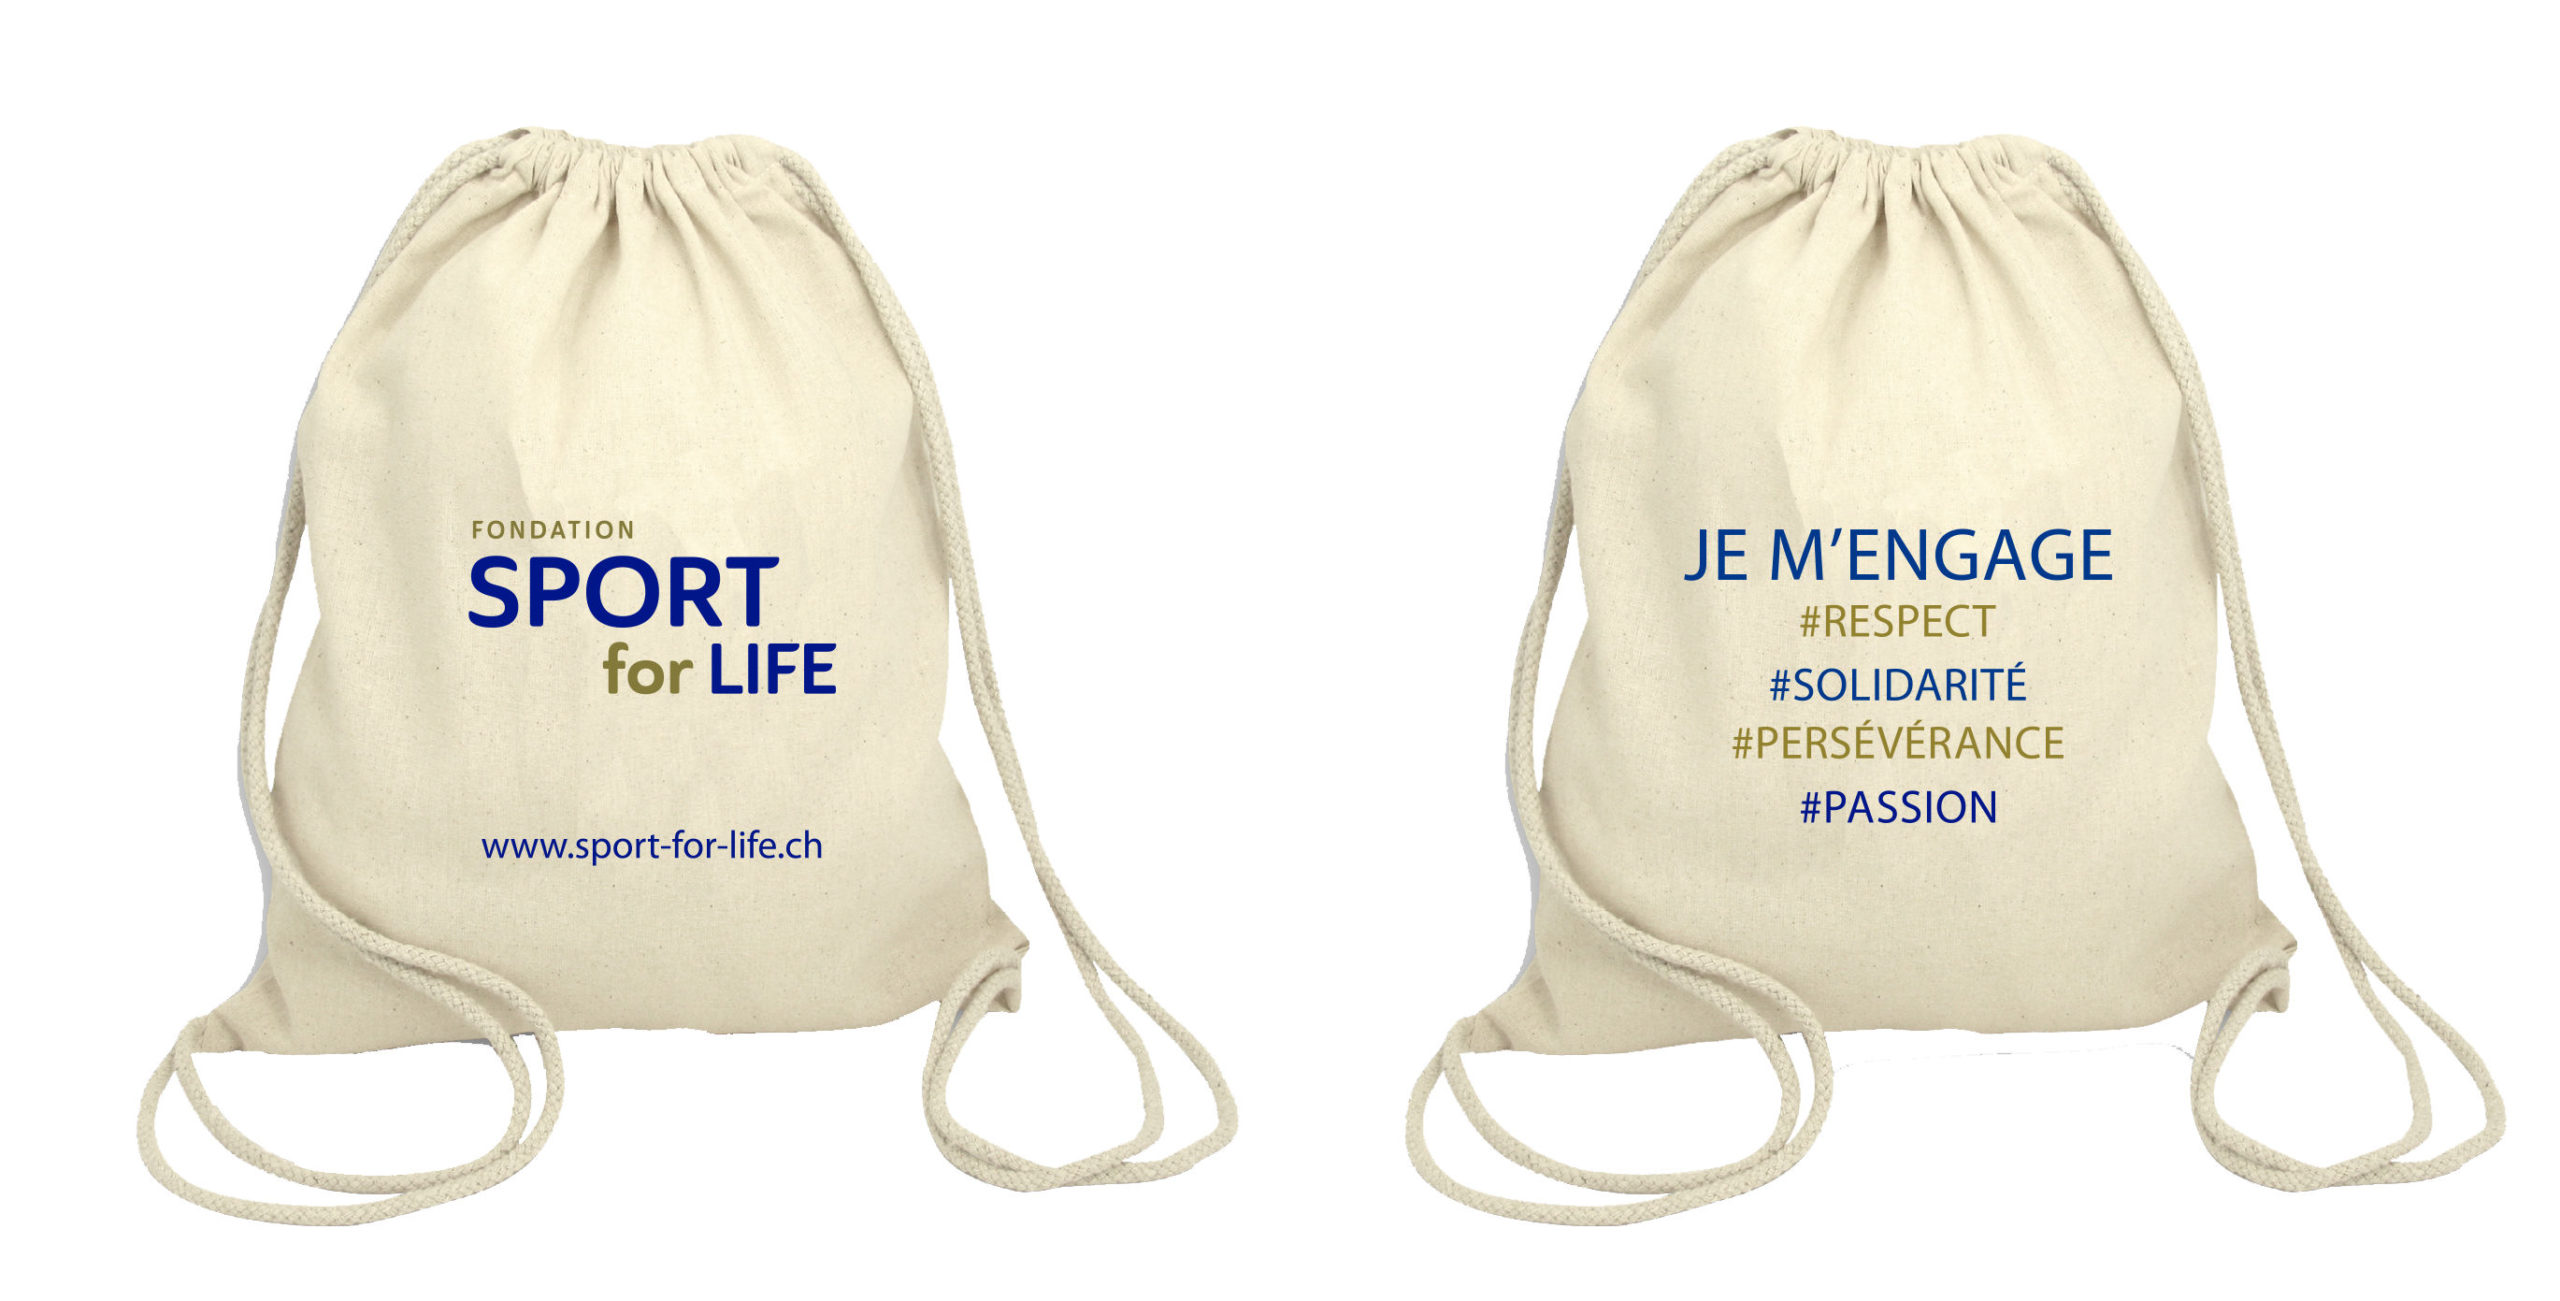 Sacs ficelles Sport for Life scaled